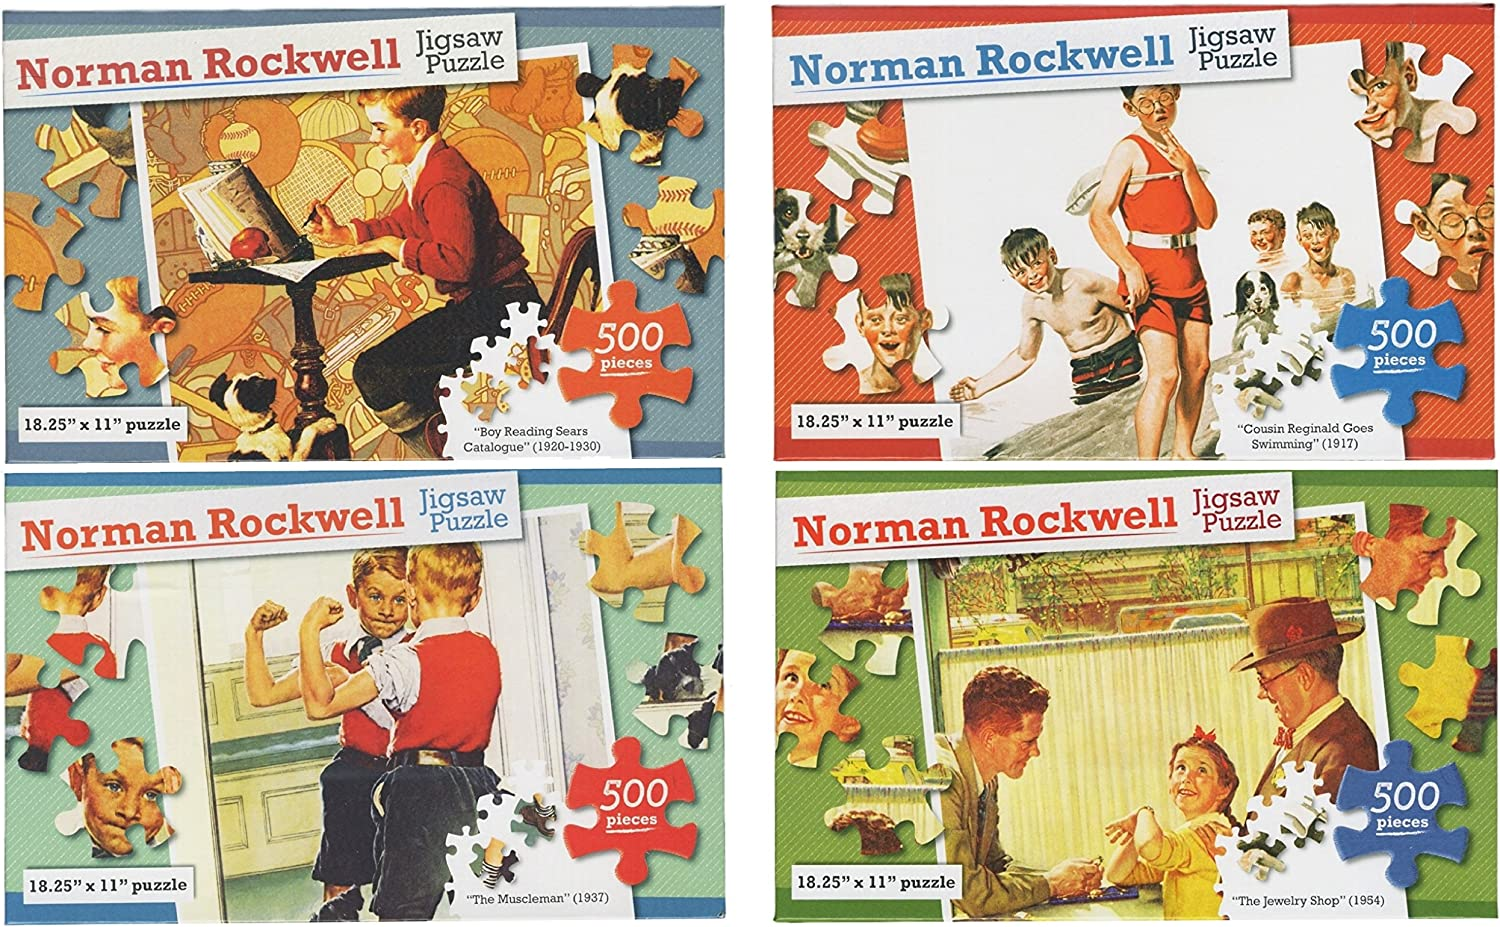 Set of 4 Different Norman Rockwell Jigsaw Puzzles  500 Pieces in Each